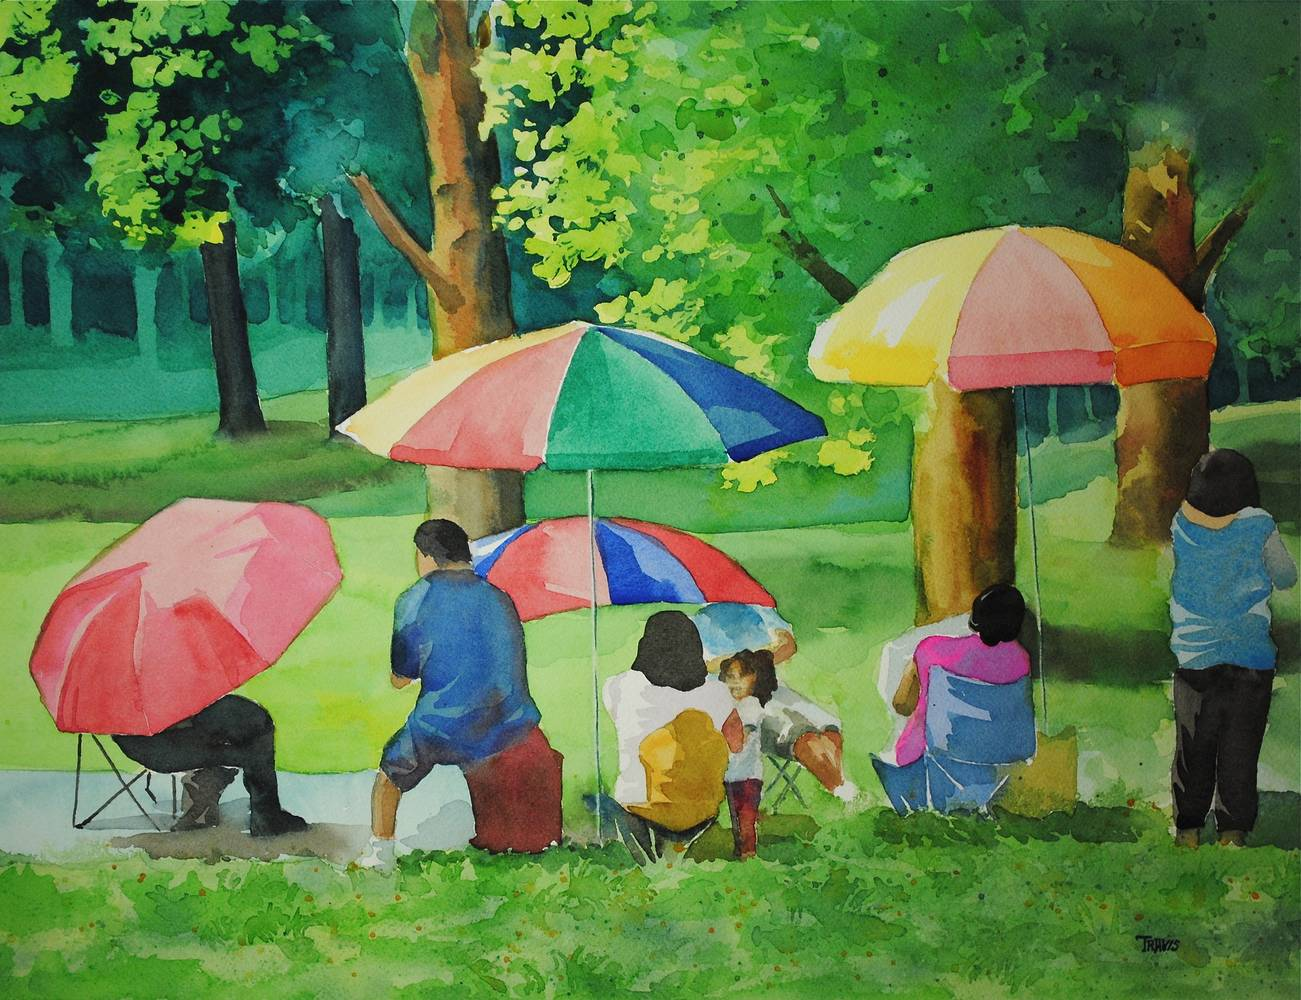 Watercolor Riverside Picnic by Travis Poelle